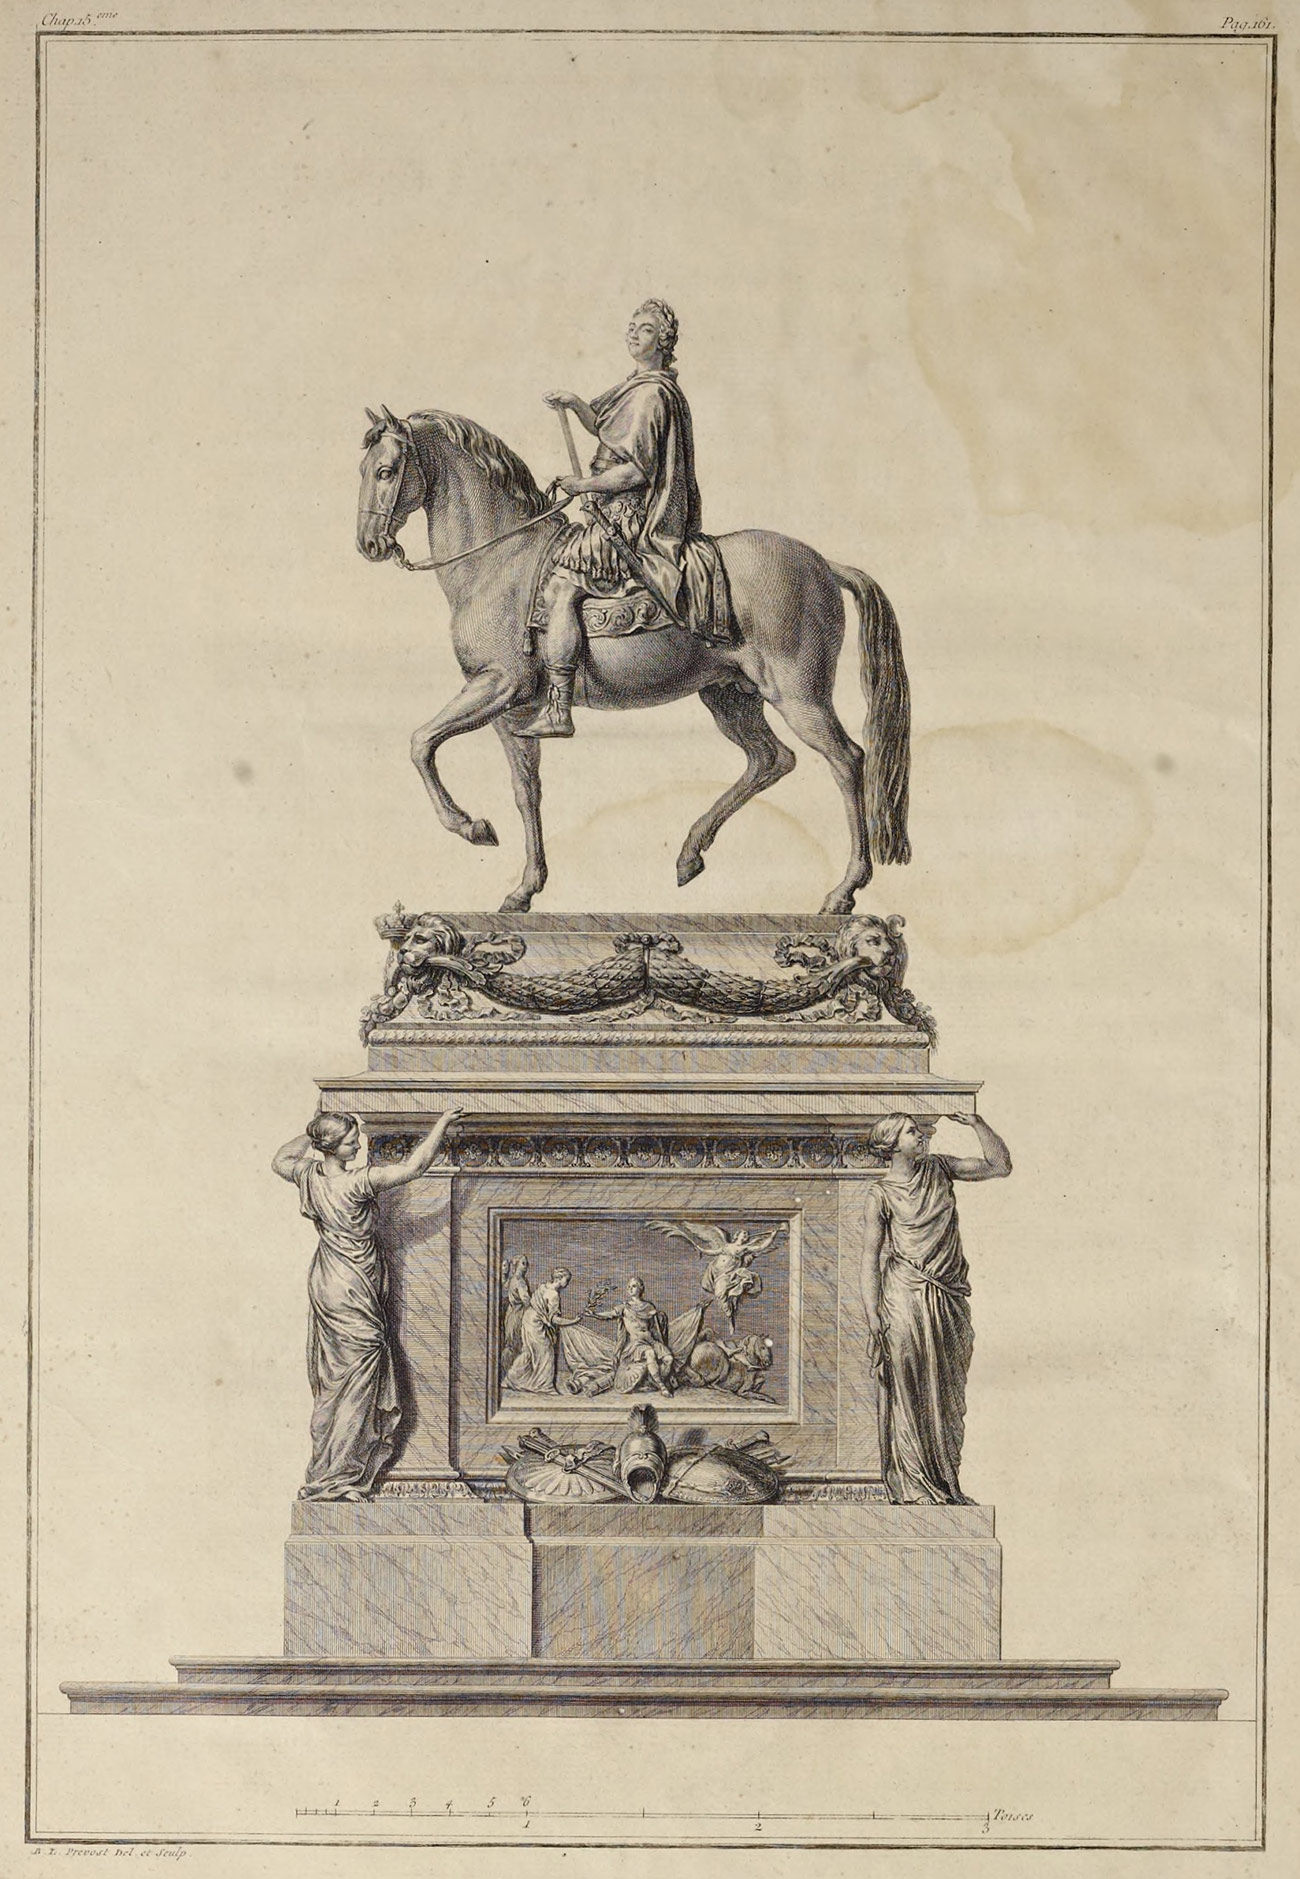 Detailed print of a large bronze statue of Louis XV on a horse, with an elaborate pedestal